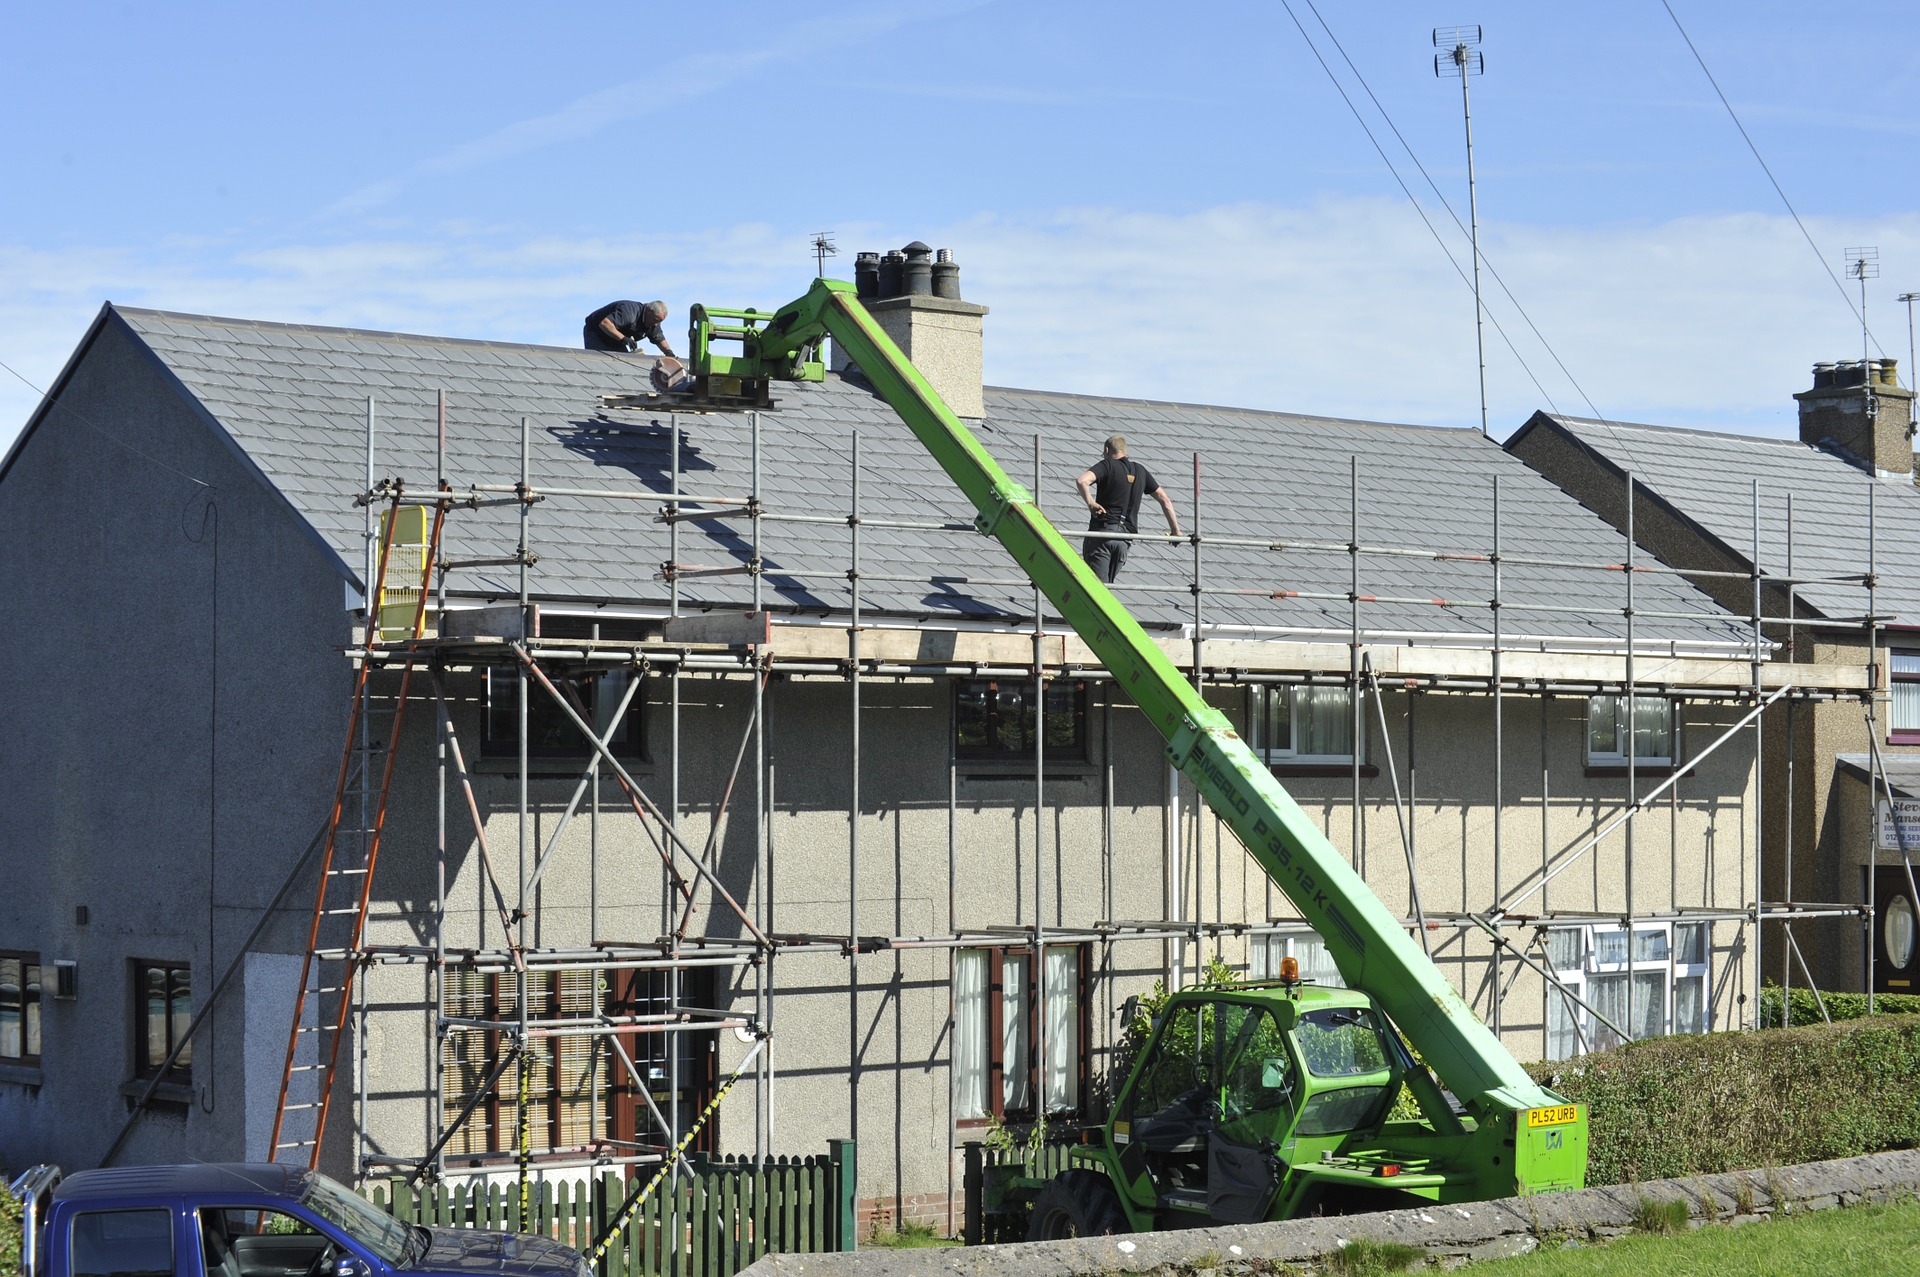 Scaffolder building with crane on a grey house